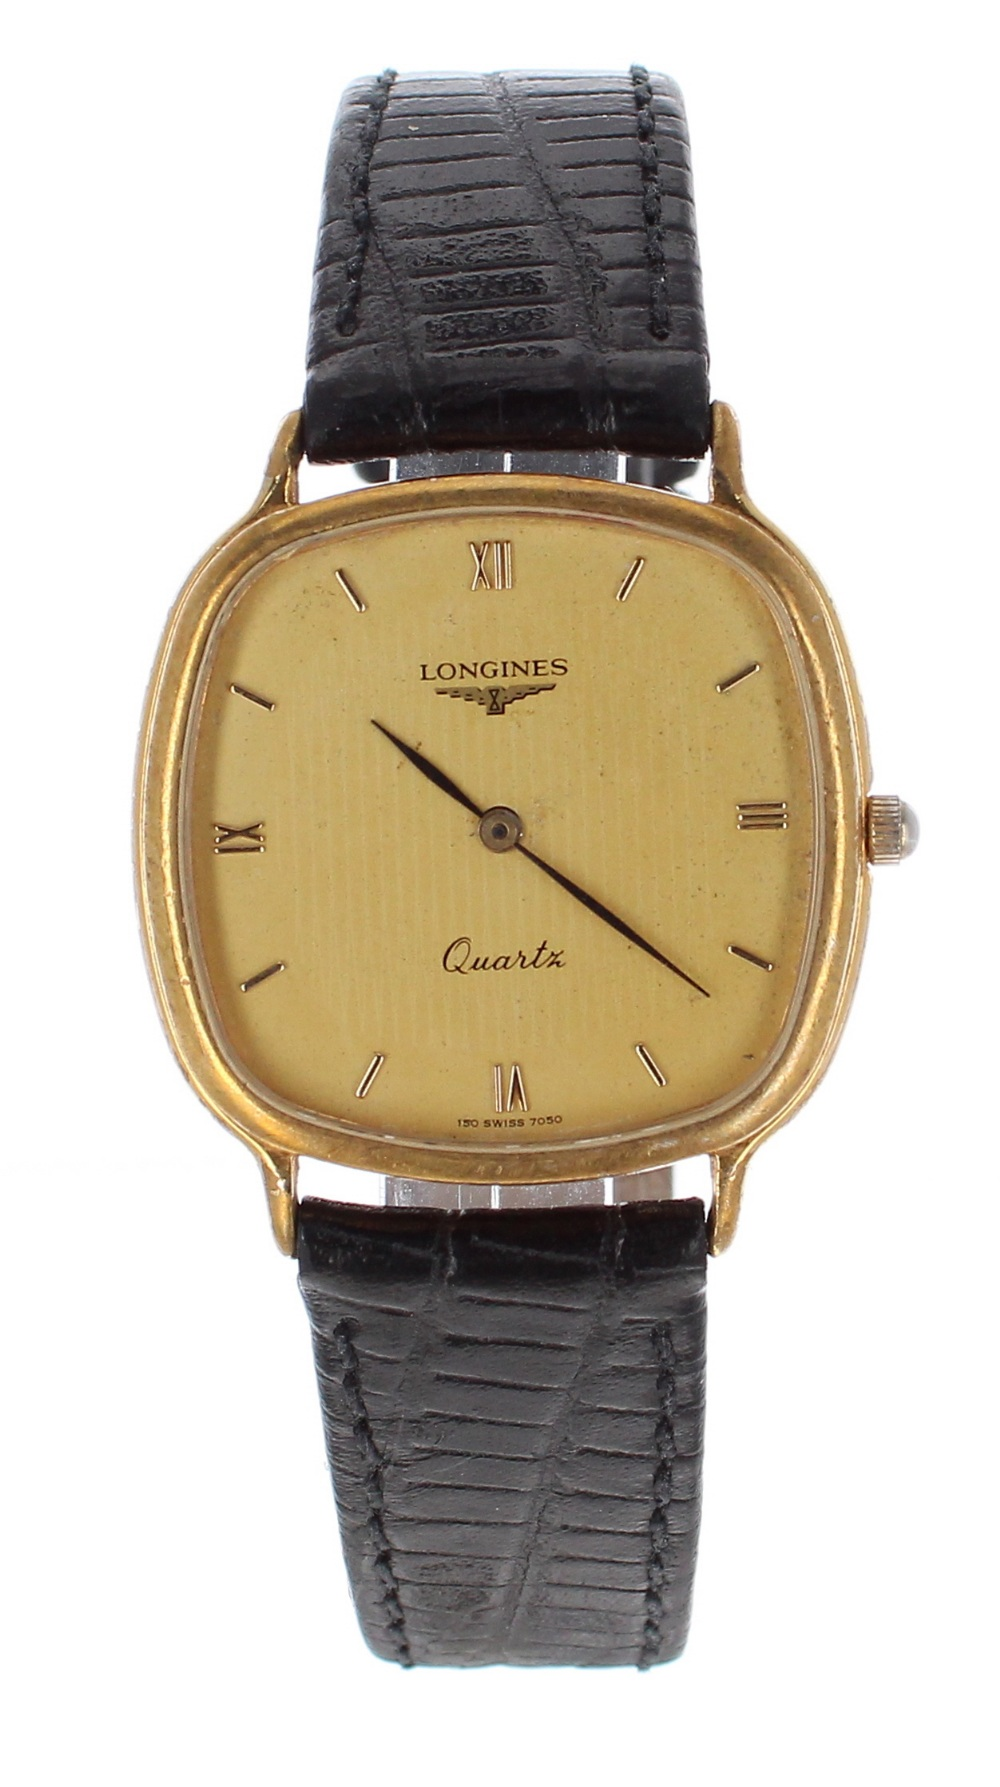 Lot 49 - Longines Quartz square cased gold plated and stainless steel gentleman's dress watch, squared